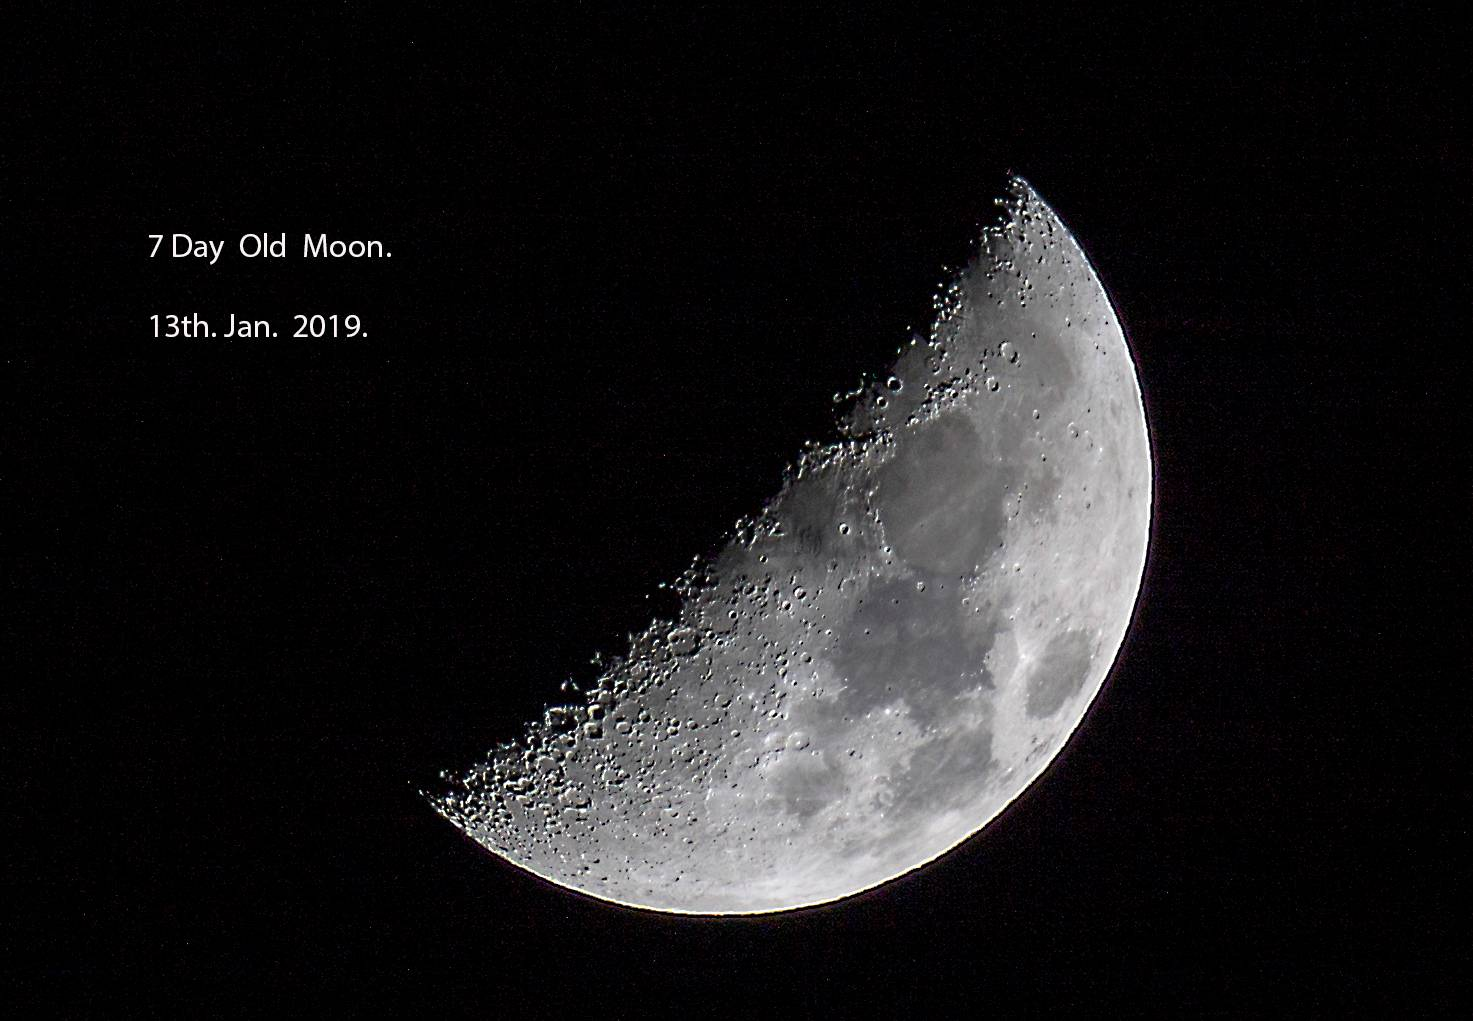 7 Day Old Moon Jan 2019